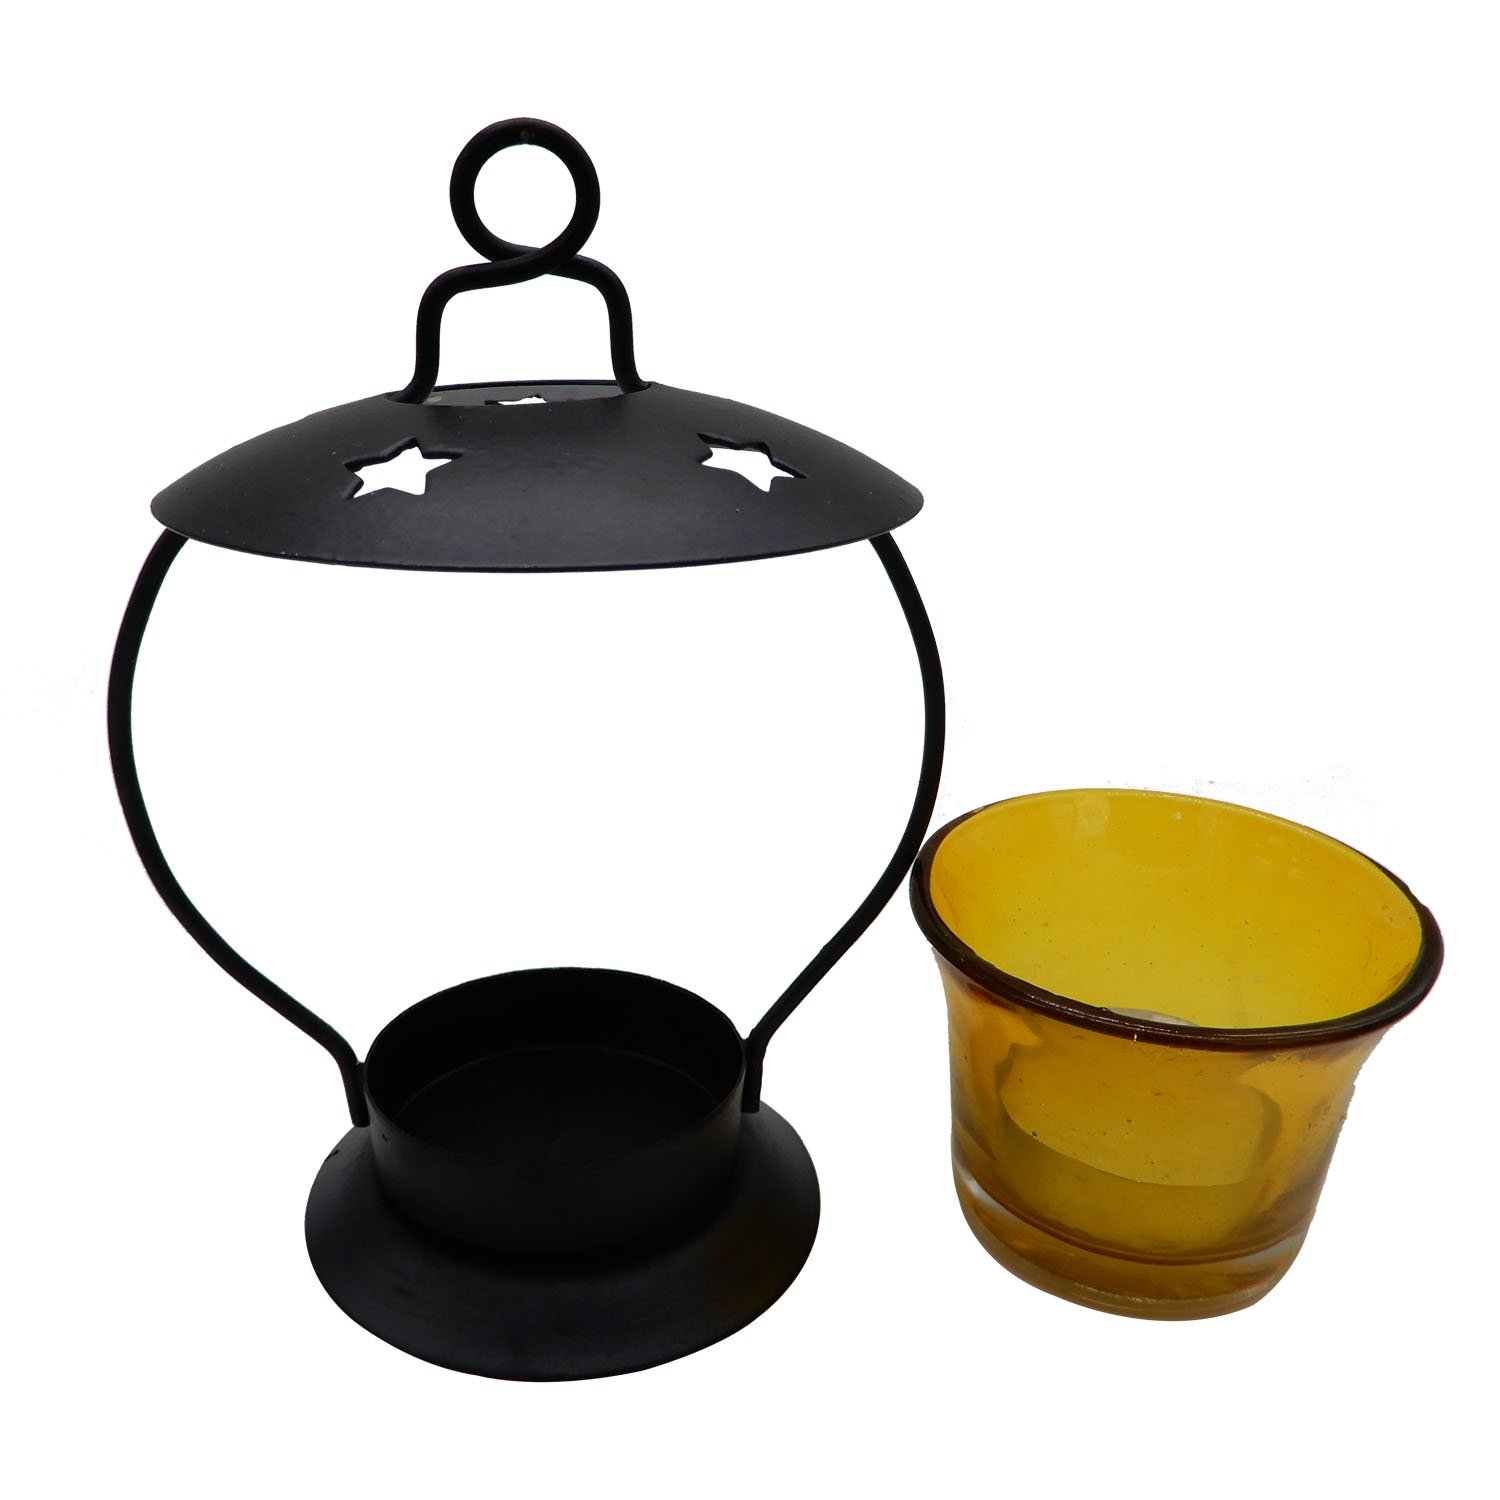 Candle Stand with device of K Khandekar Candle Holder 6.5 Inch T-light Votive Candle Stand T-light Stand